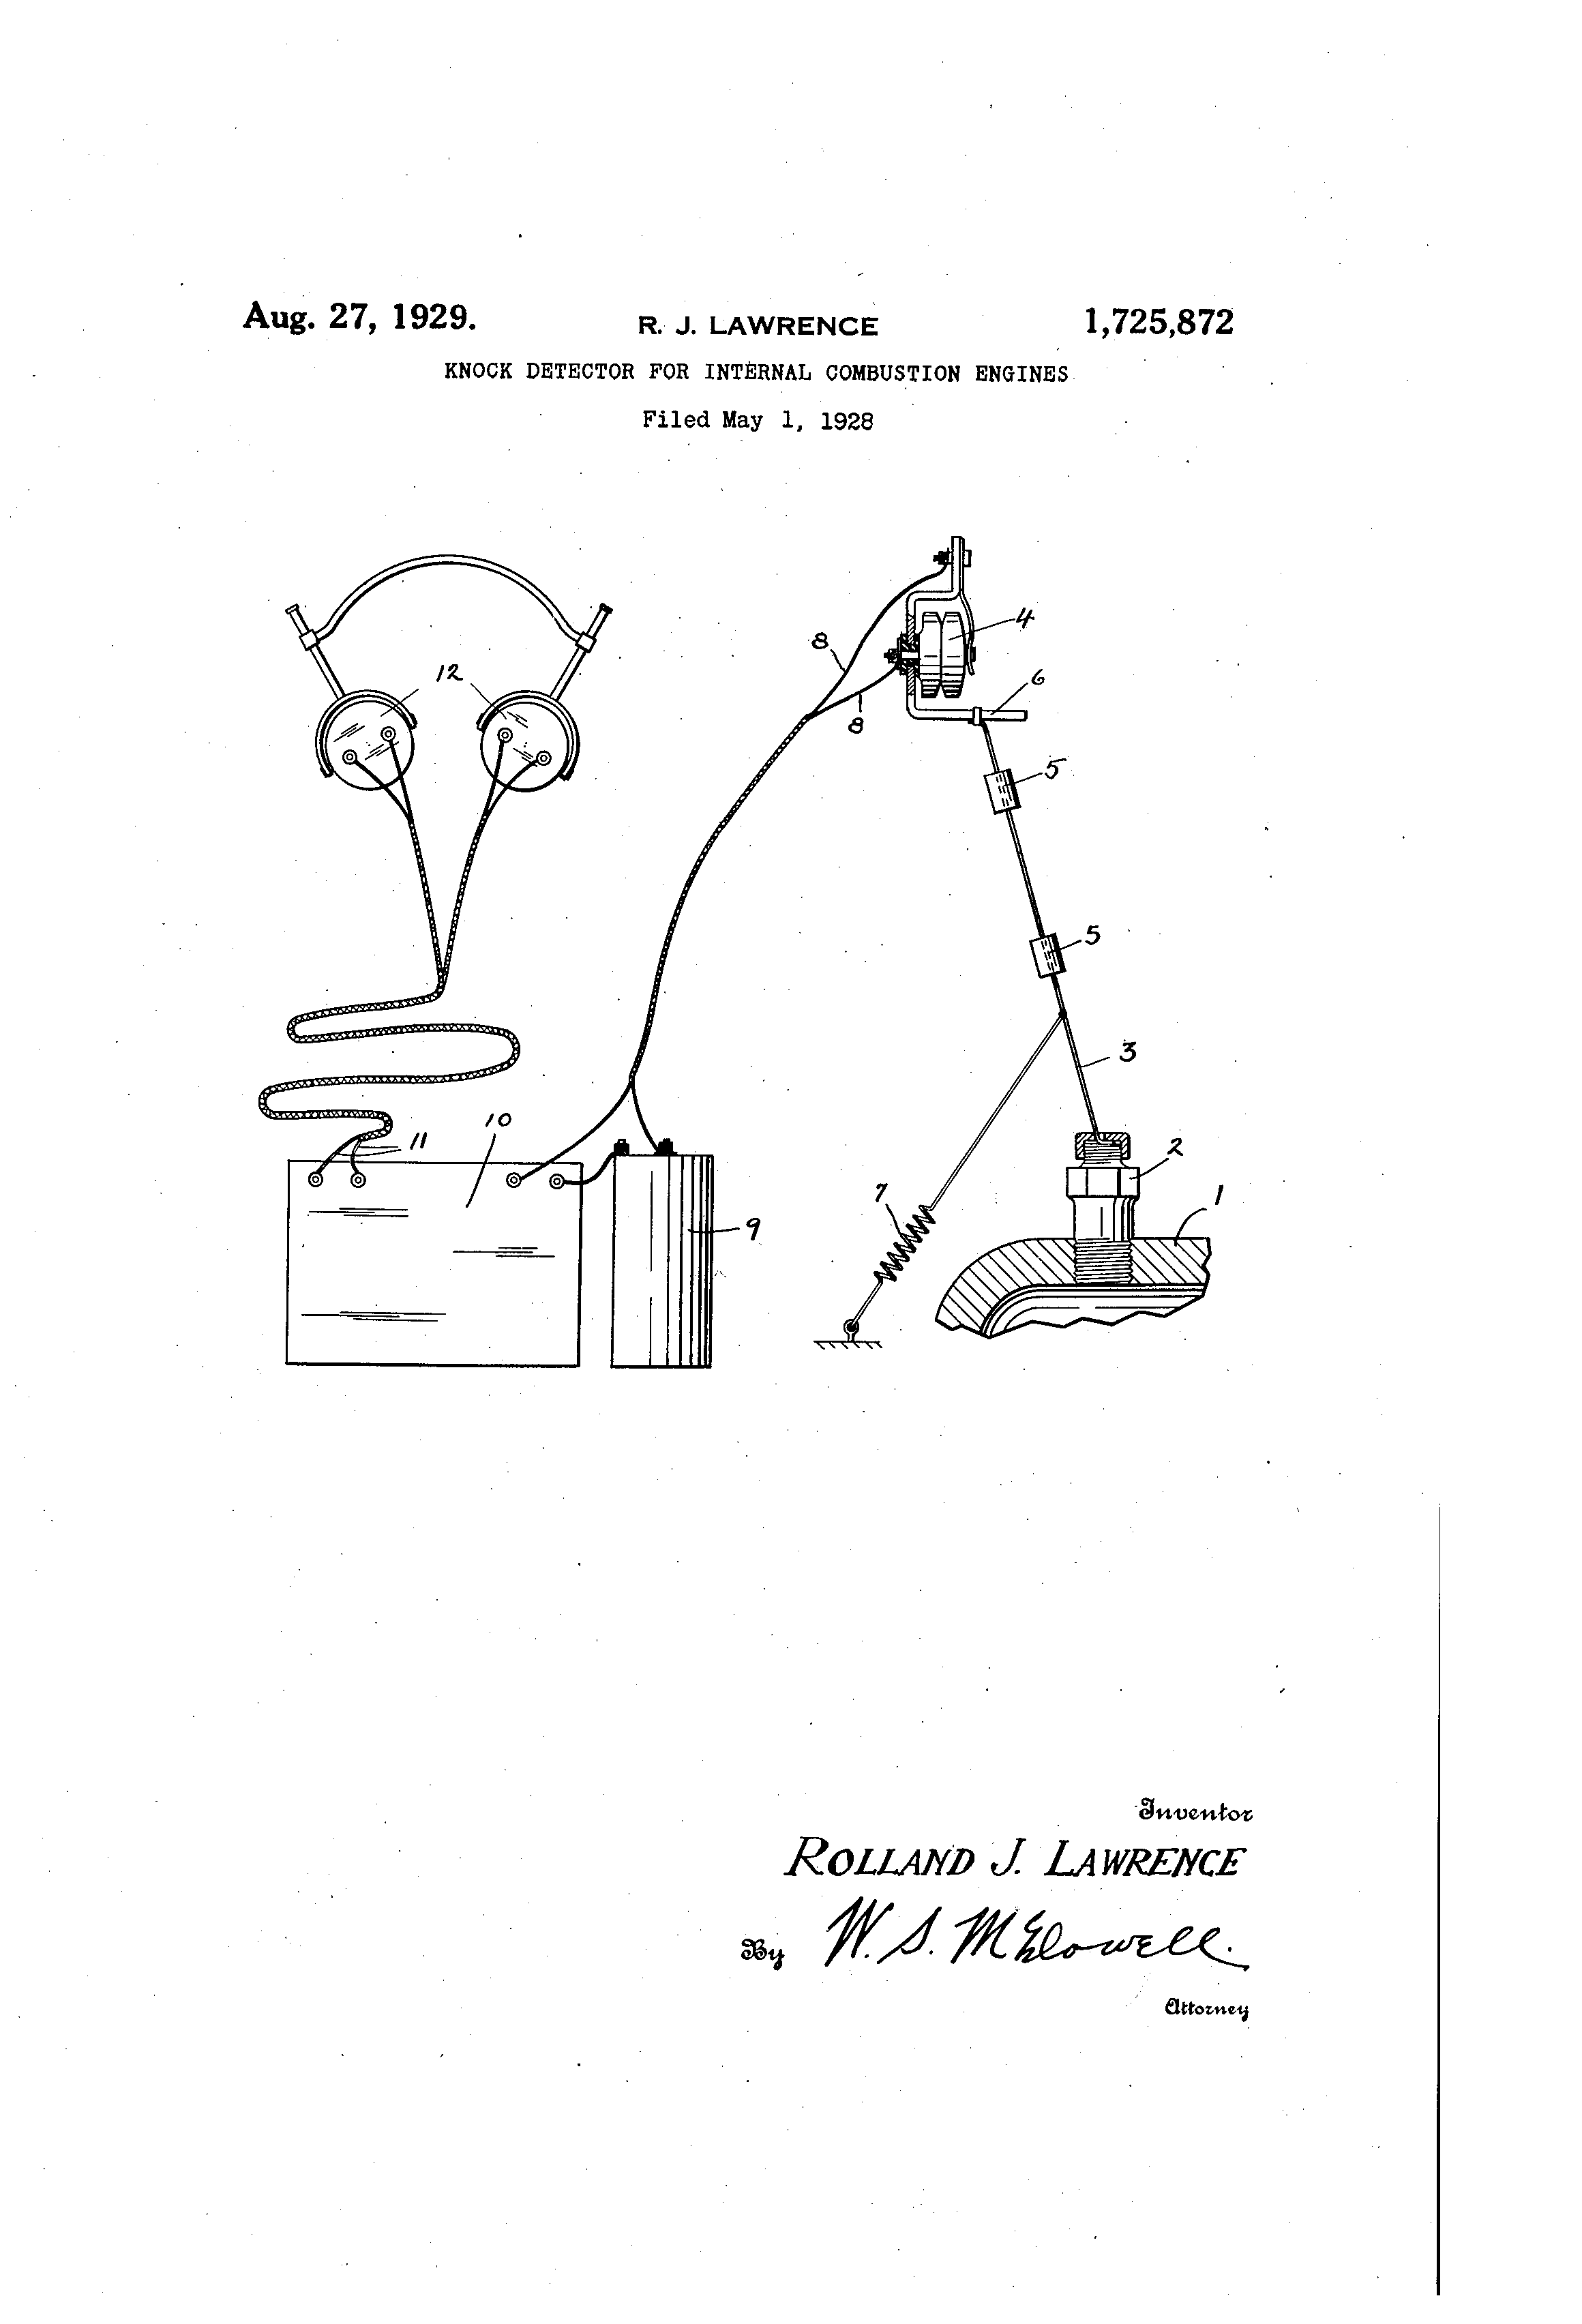 Brevet Us1725872 Knock Detector For Internal Combustion Engines Illustrated Diagram Of A Basic Engine Patent Drawing